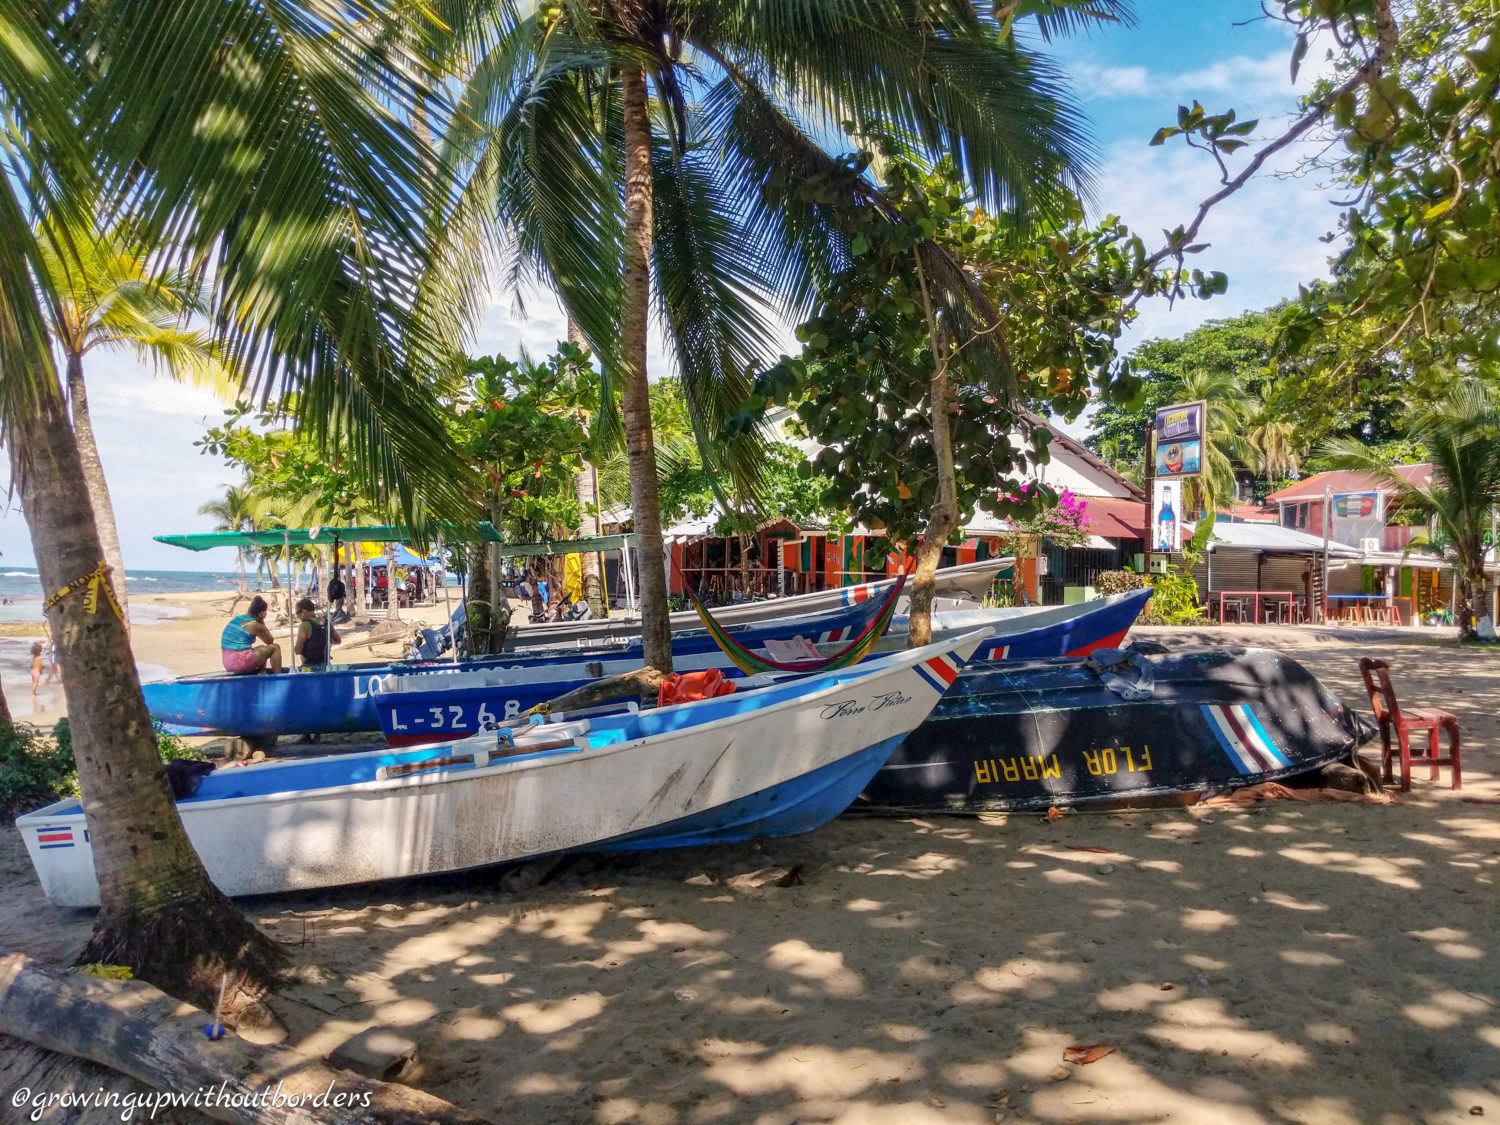 Costa Rica, boat, beach